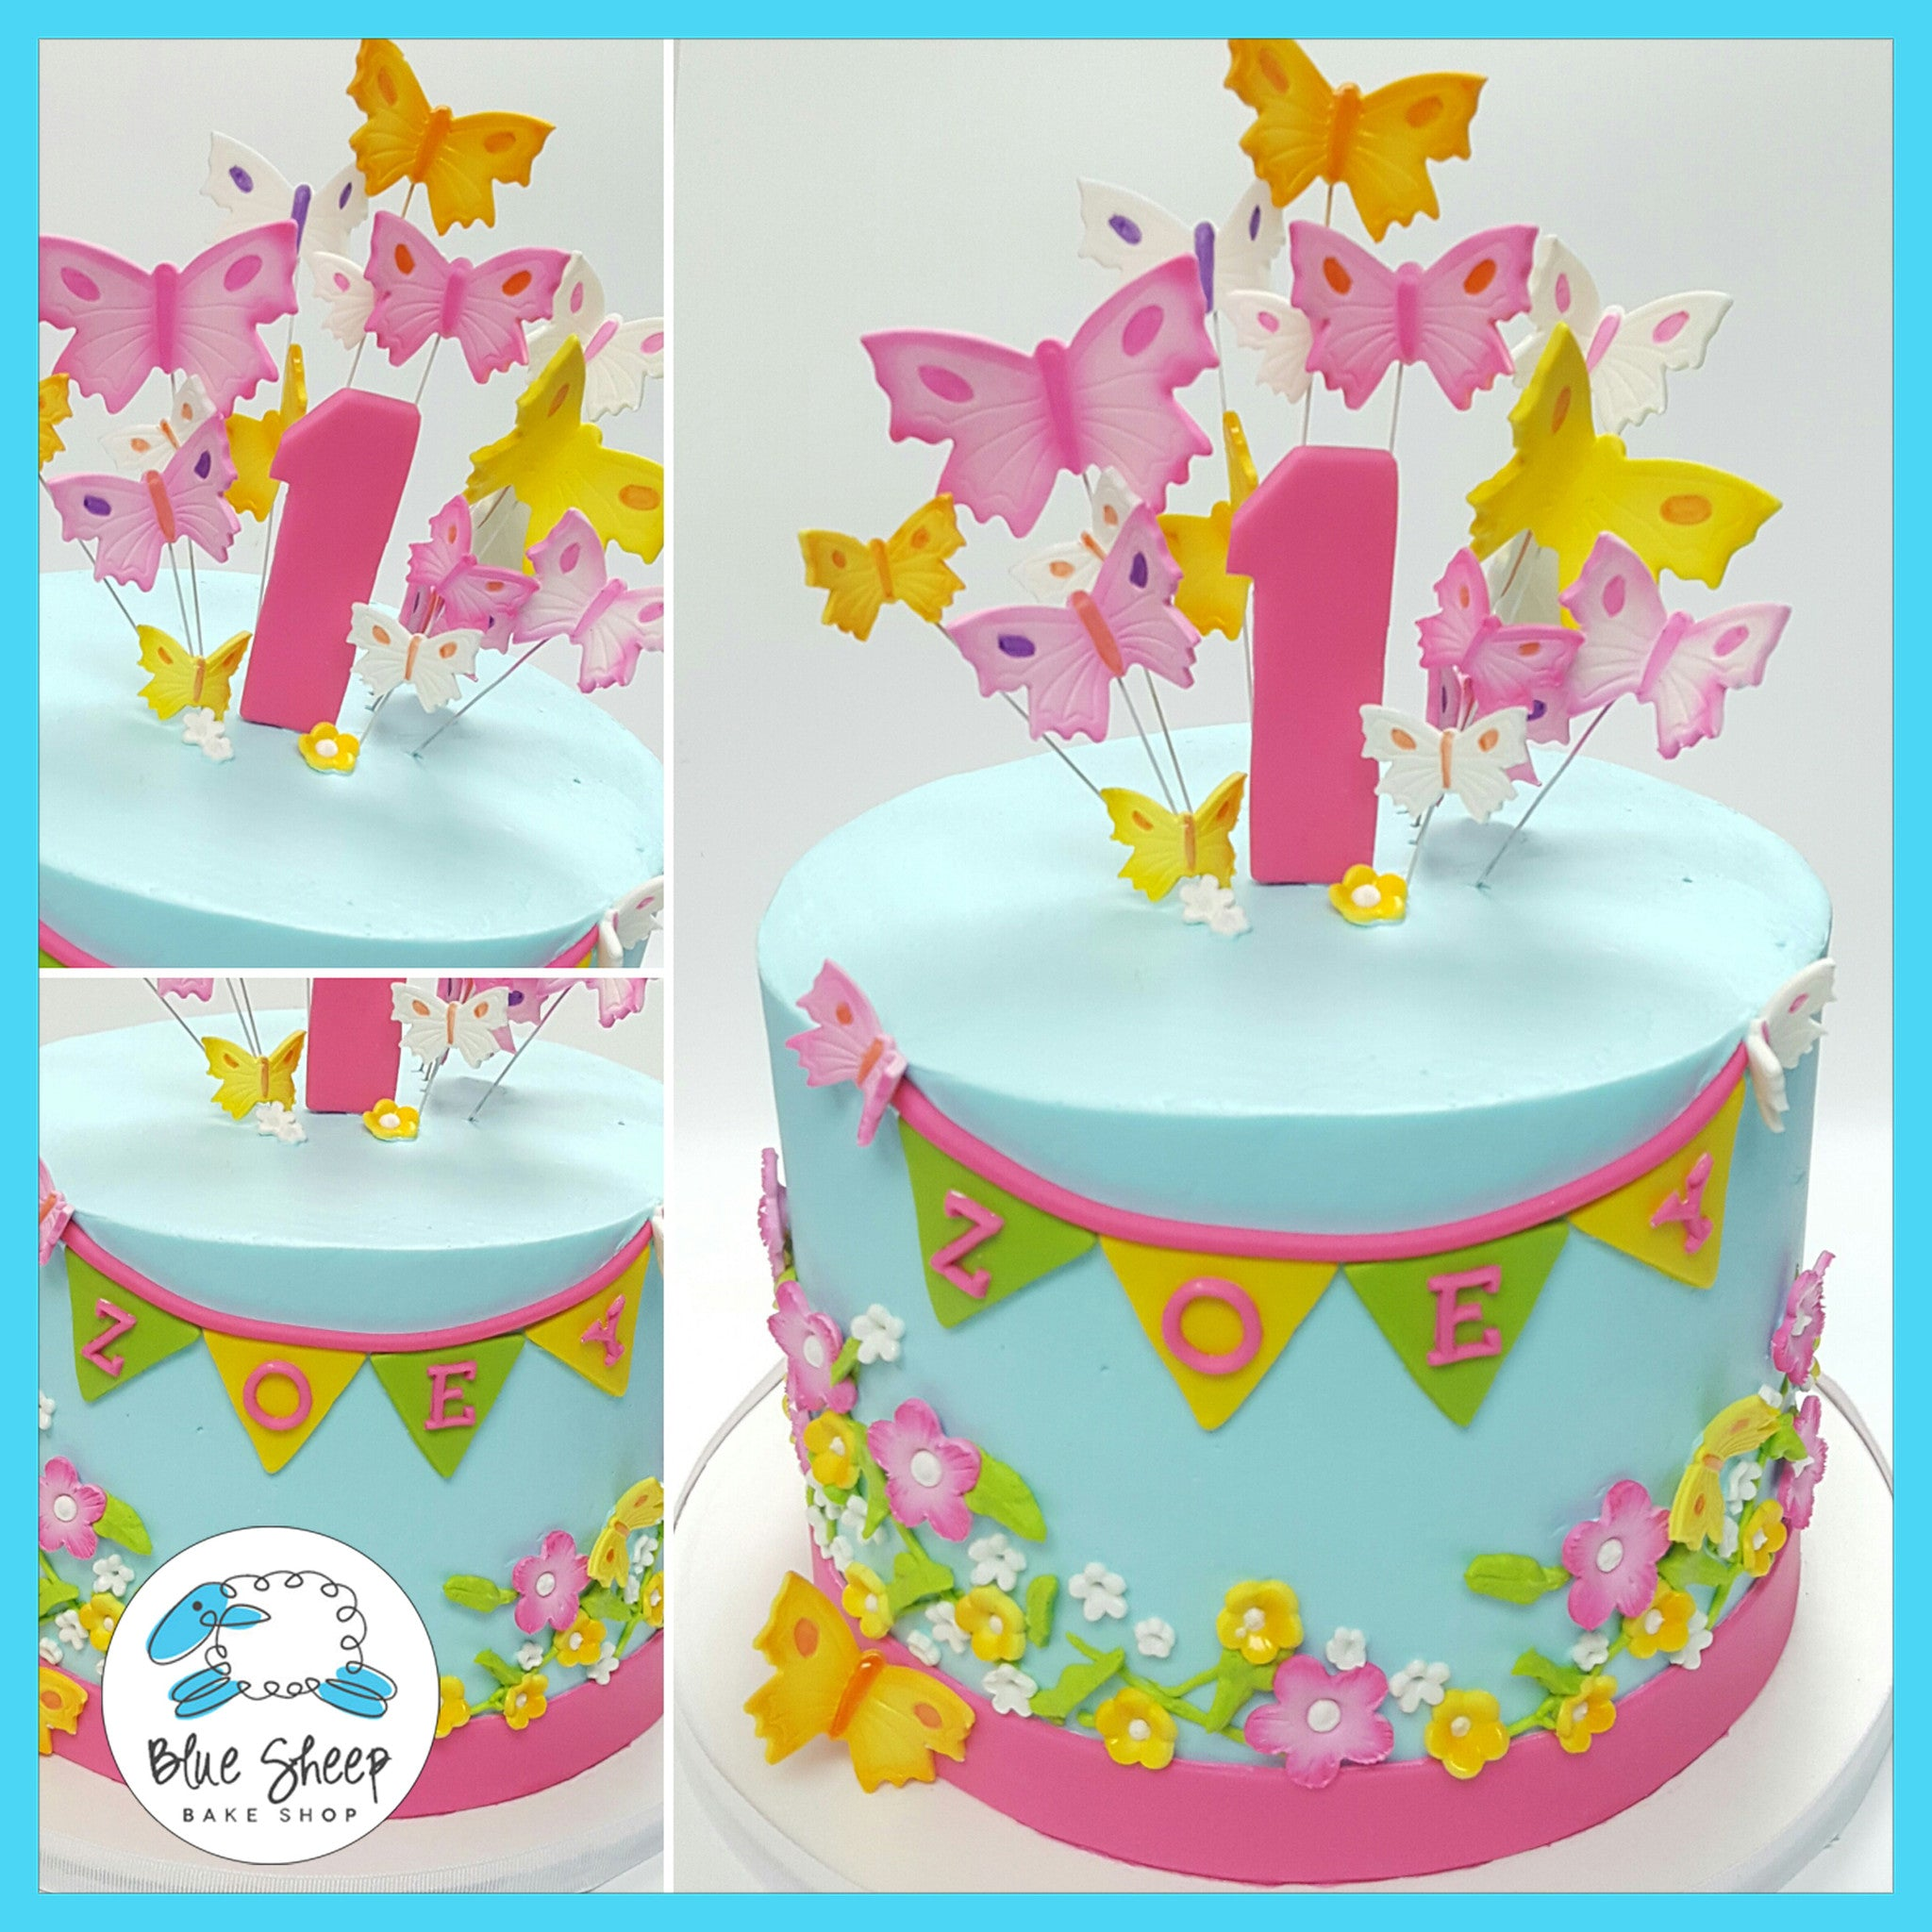 Pleasant Zoeys Buttercream Butterfly 1St Birthday Cake Blue Sheep Bake Shop Personalised Birthday Cards Petedlily Jamesorg